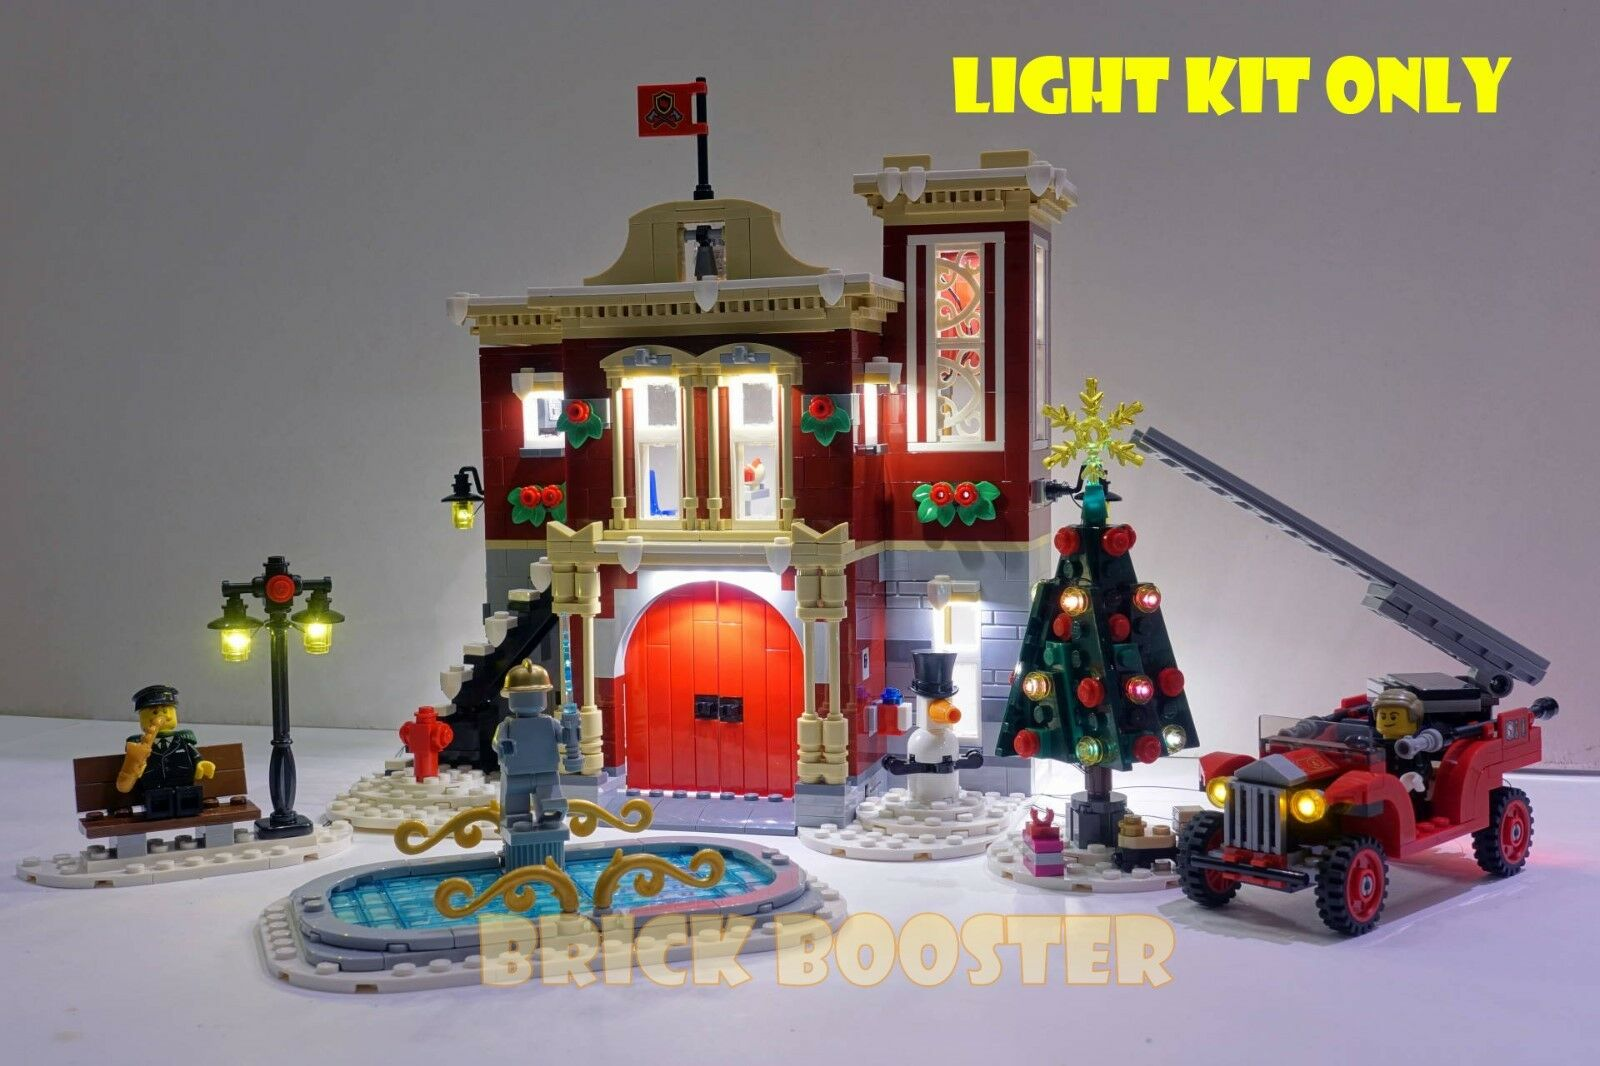 USB Powerot LED Light Kit for Lego 10263 Winter Village Fire Station